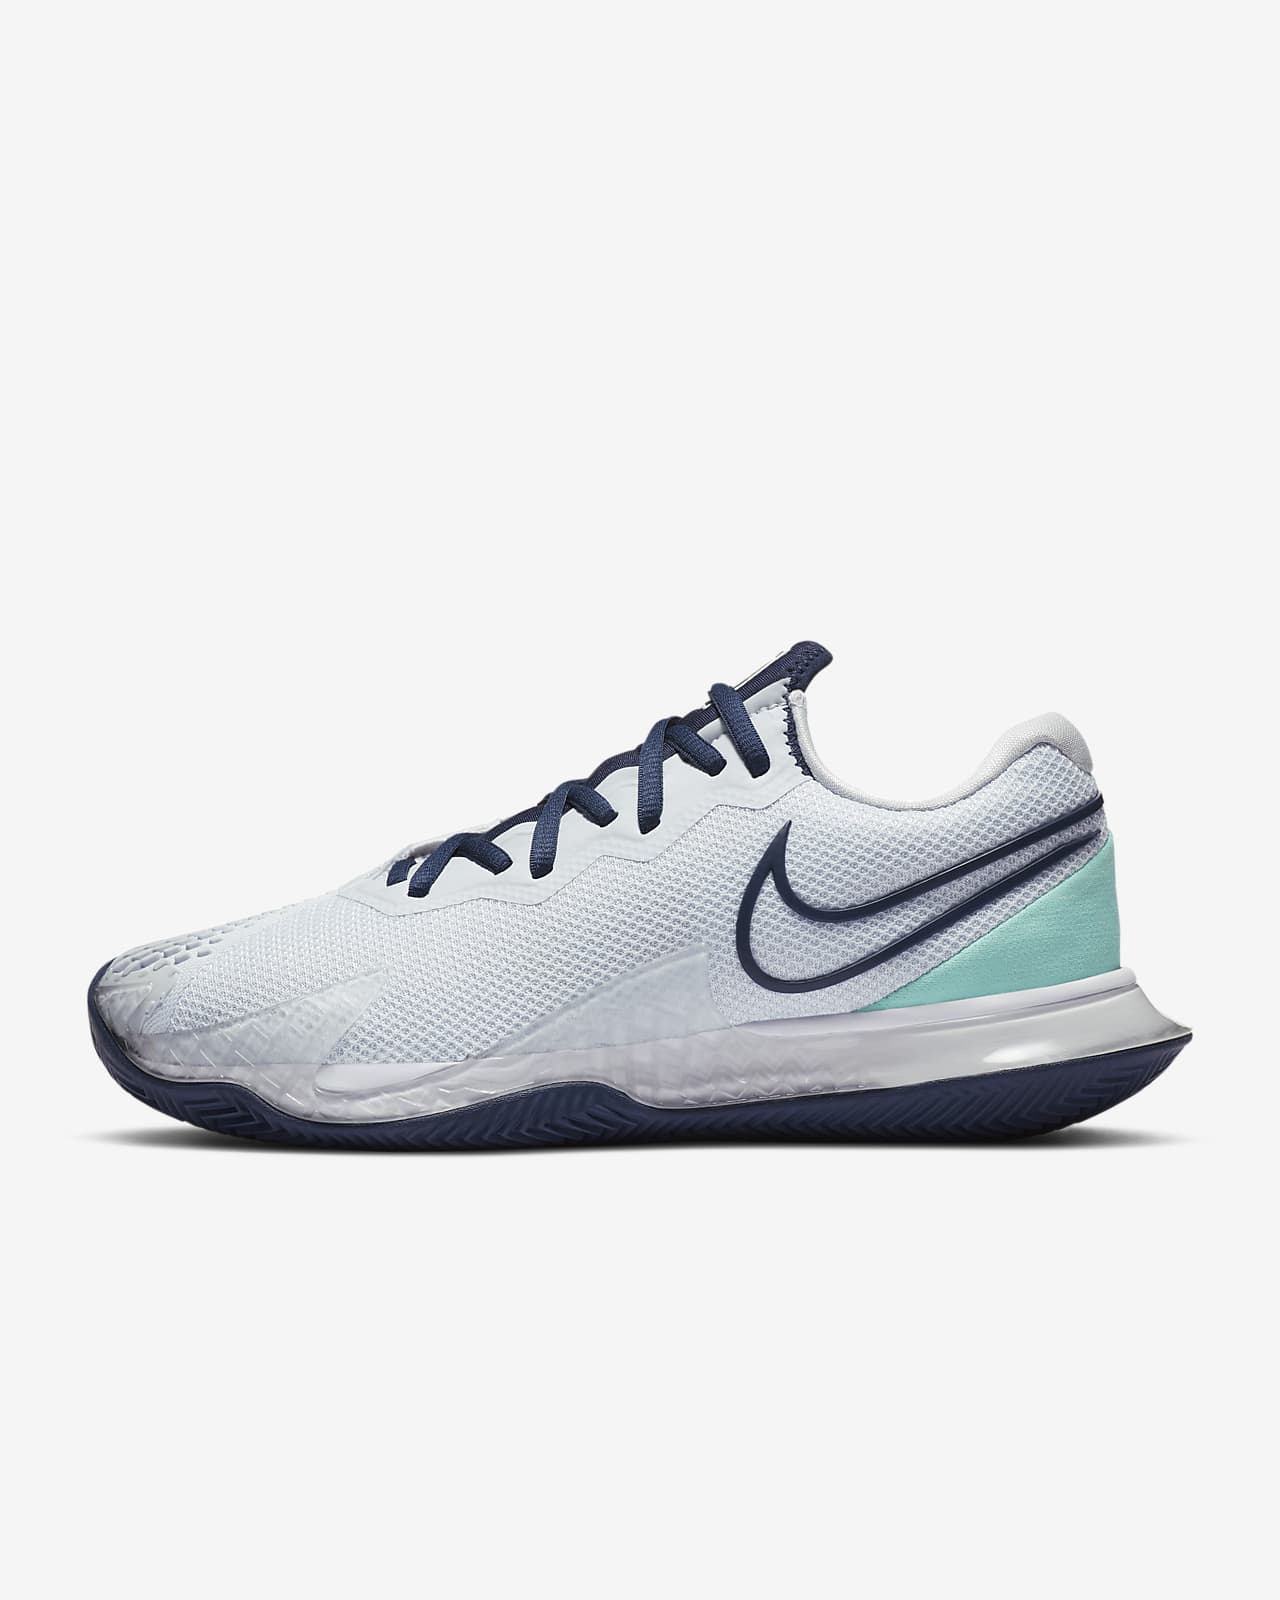 NikeCourt Air Zoom Vapor Cage 4 Women's Clay Court Tennis Shoe